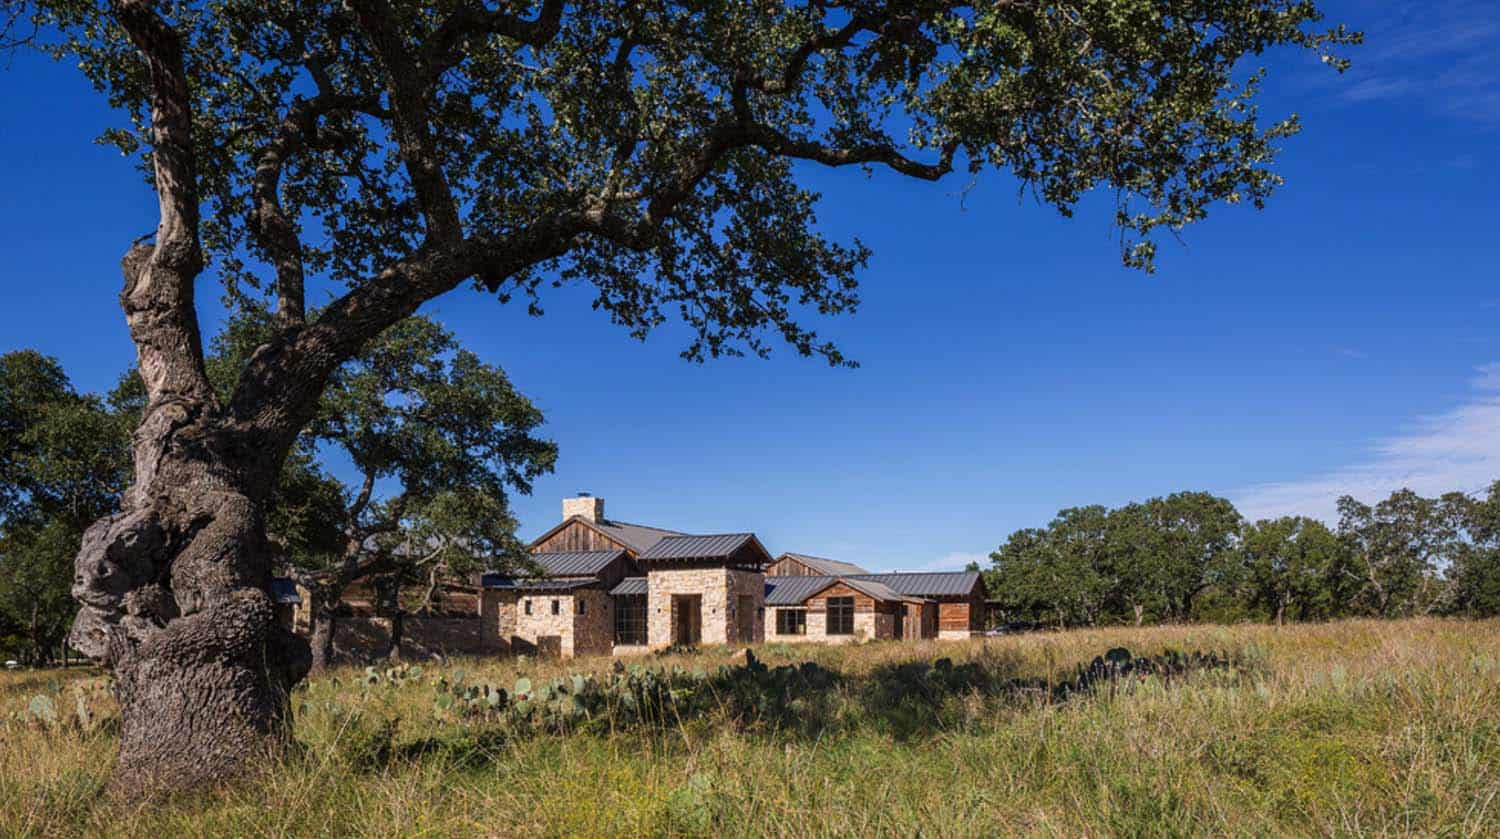 Texas Hill Country House Plans Modern Rustic Barn Style Retreat In Texas Hill Country